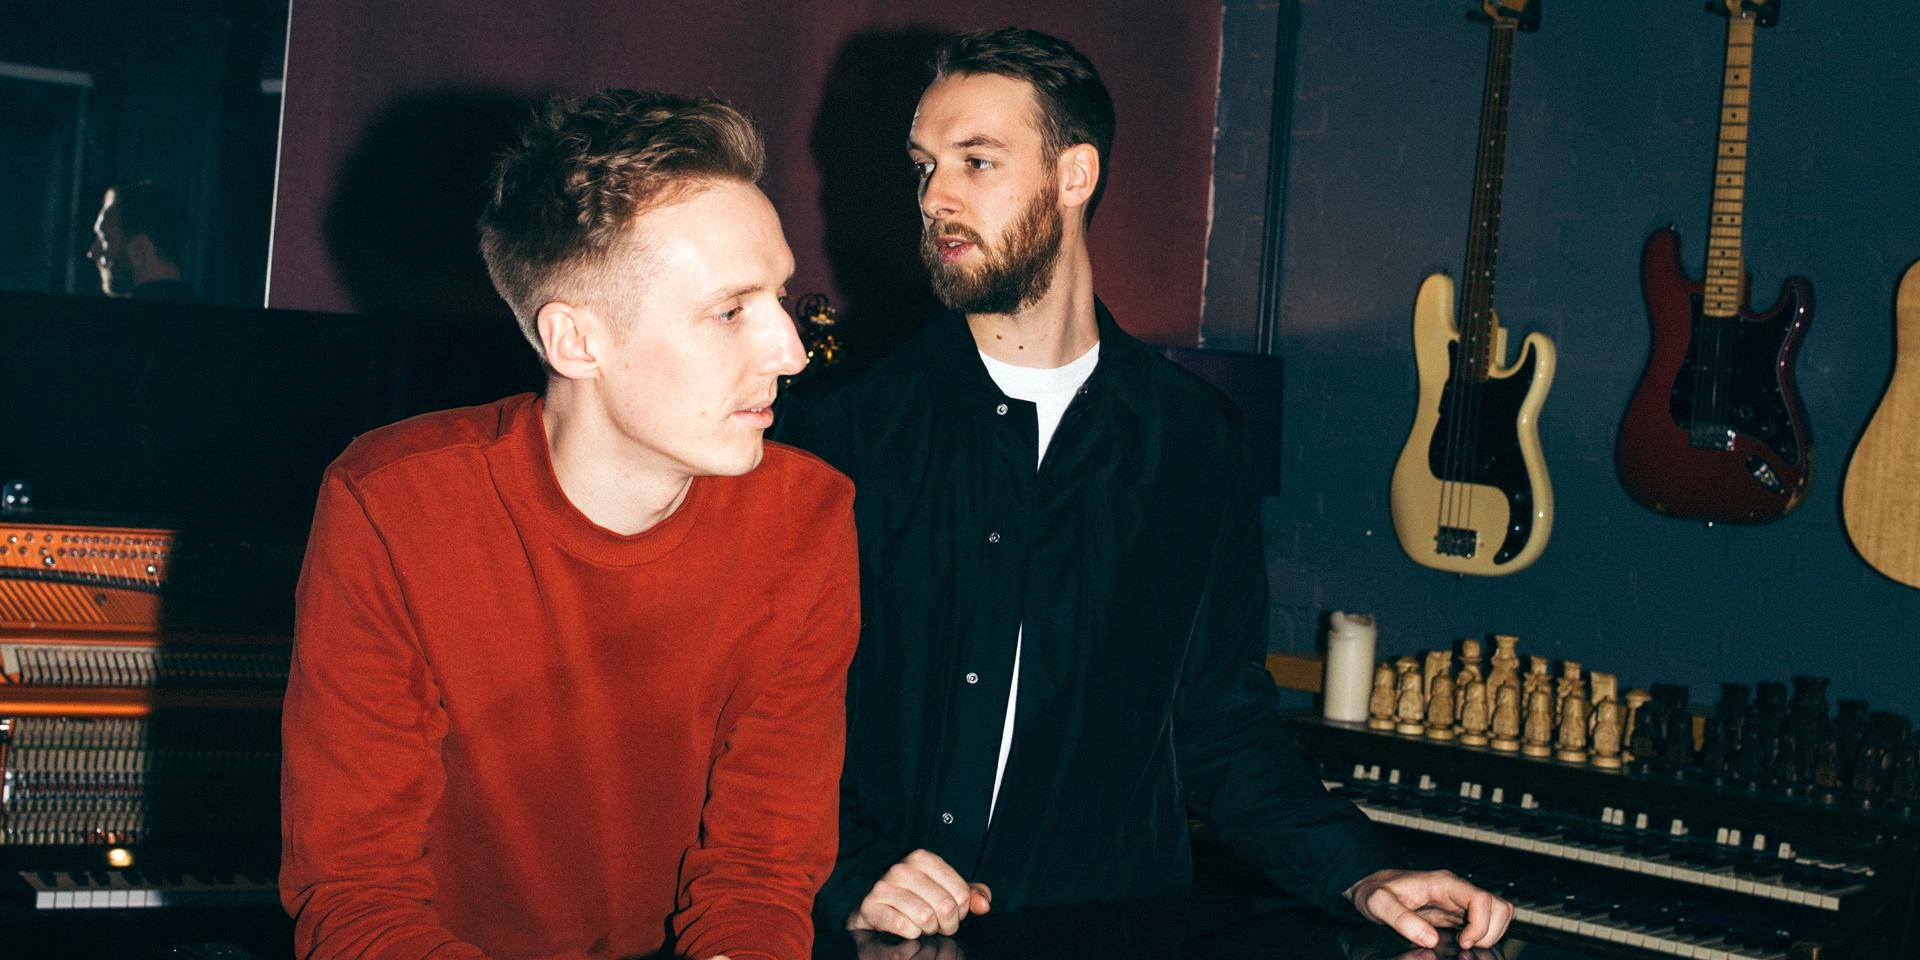 Honne to perform in Singapore in 2019